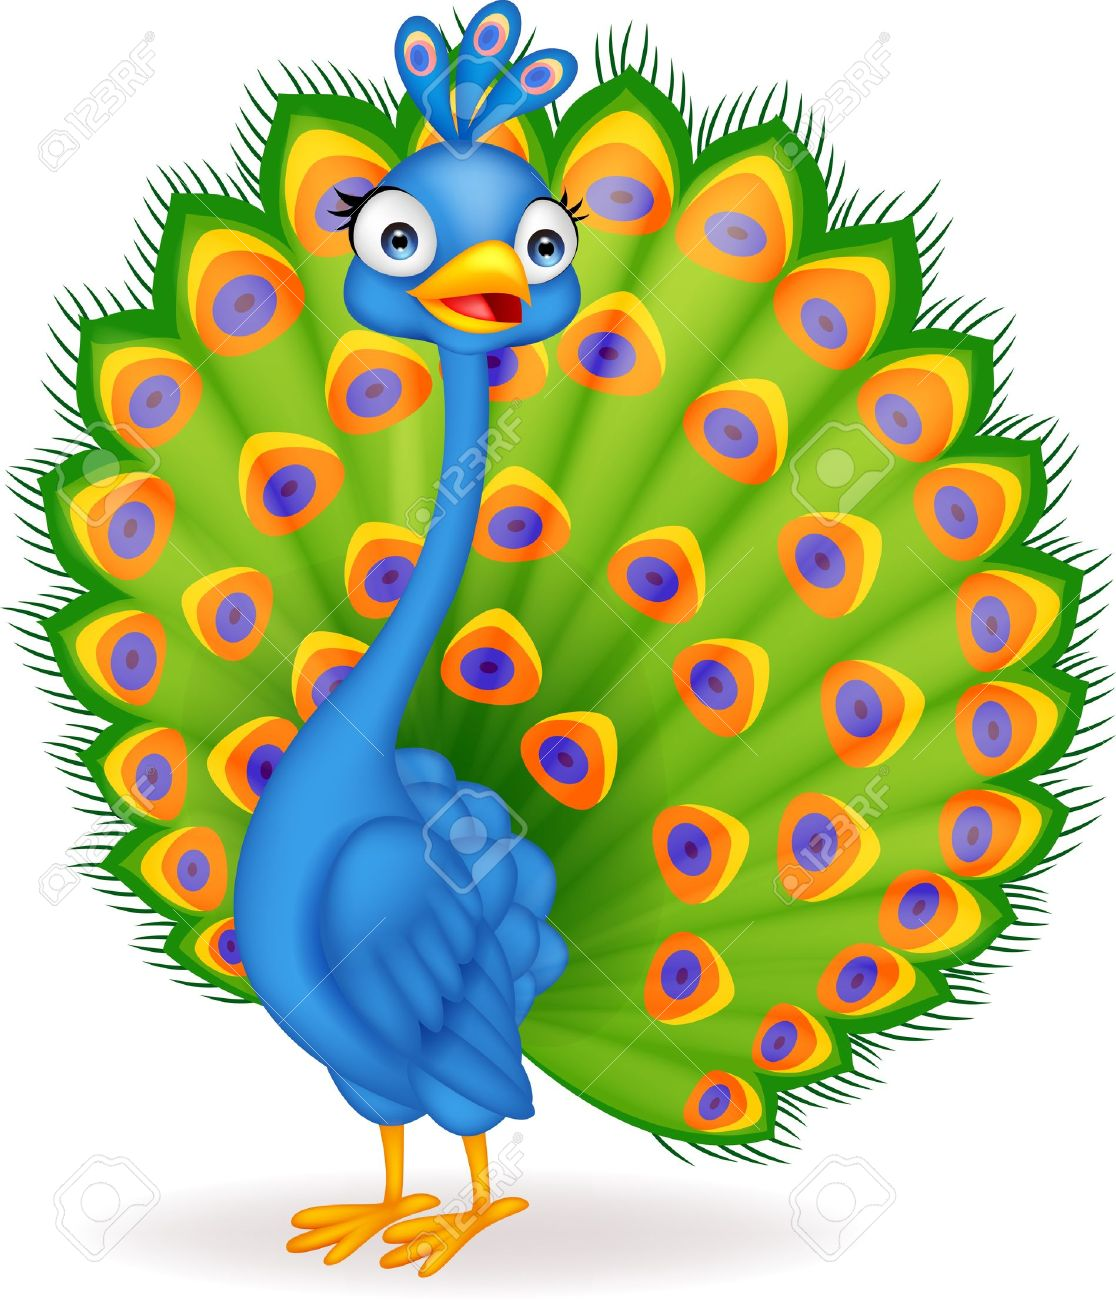 Peafowl clipart #16, Download drawings